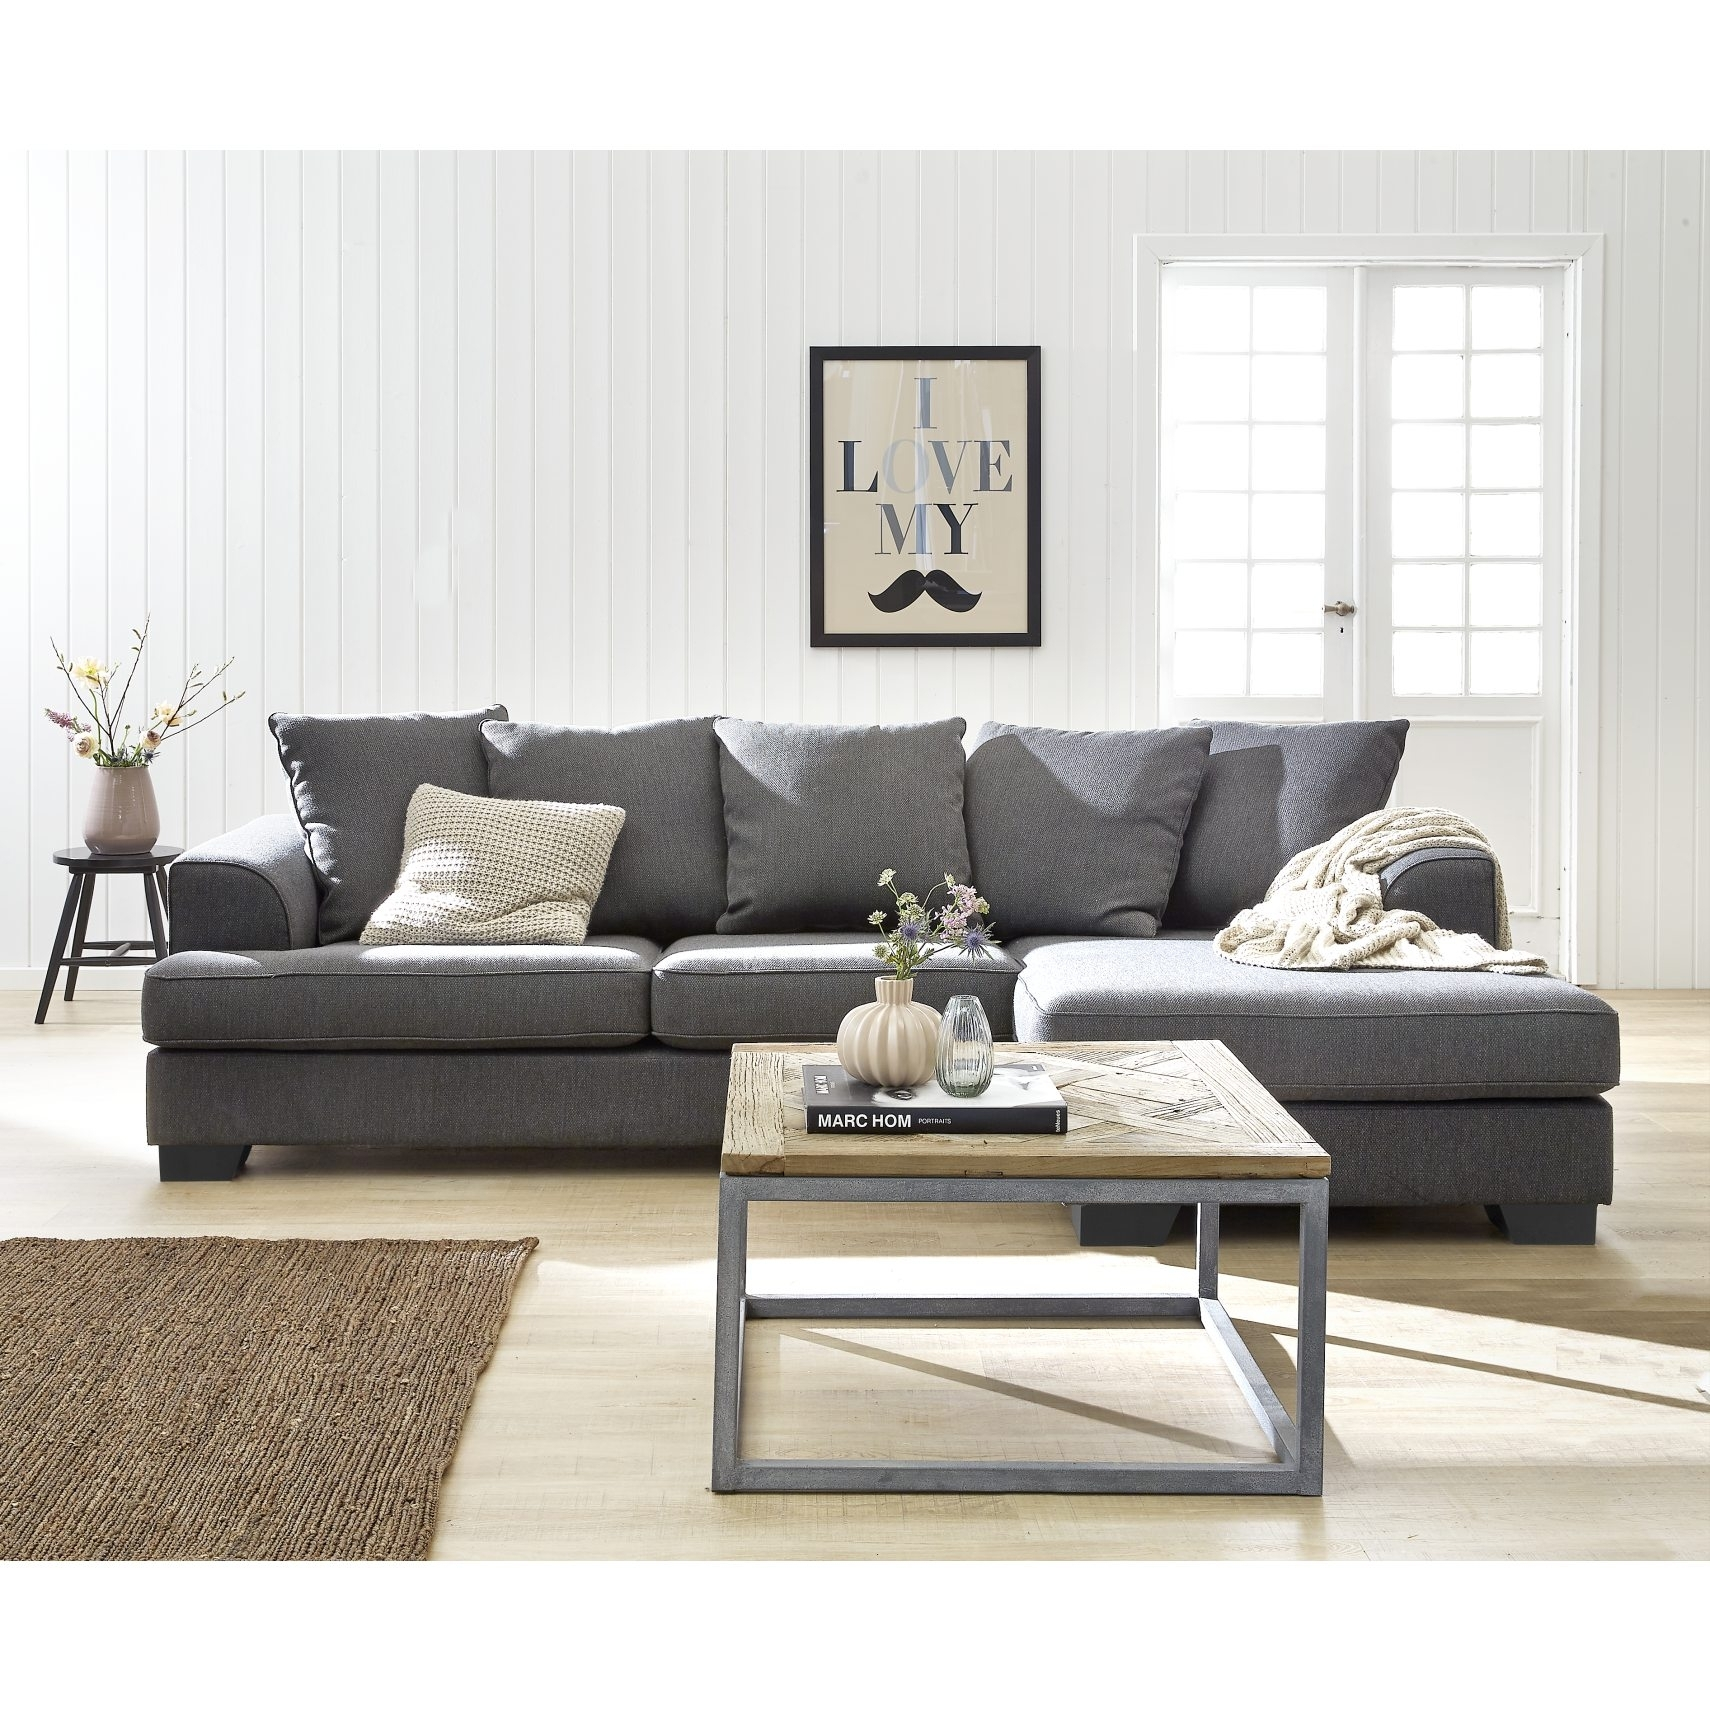 Sofa Kingston Ontario | Thecreativescientist In Kingston Ontario Sectional Sofas (View 6 of 10)